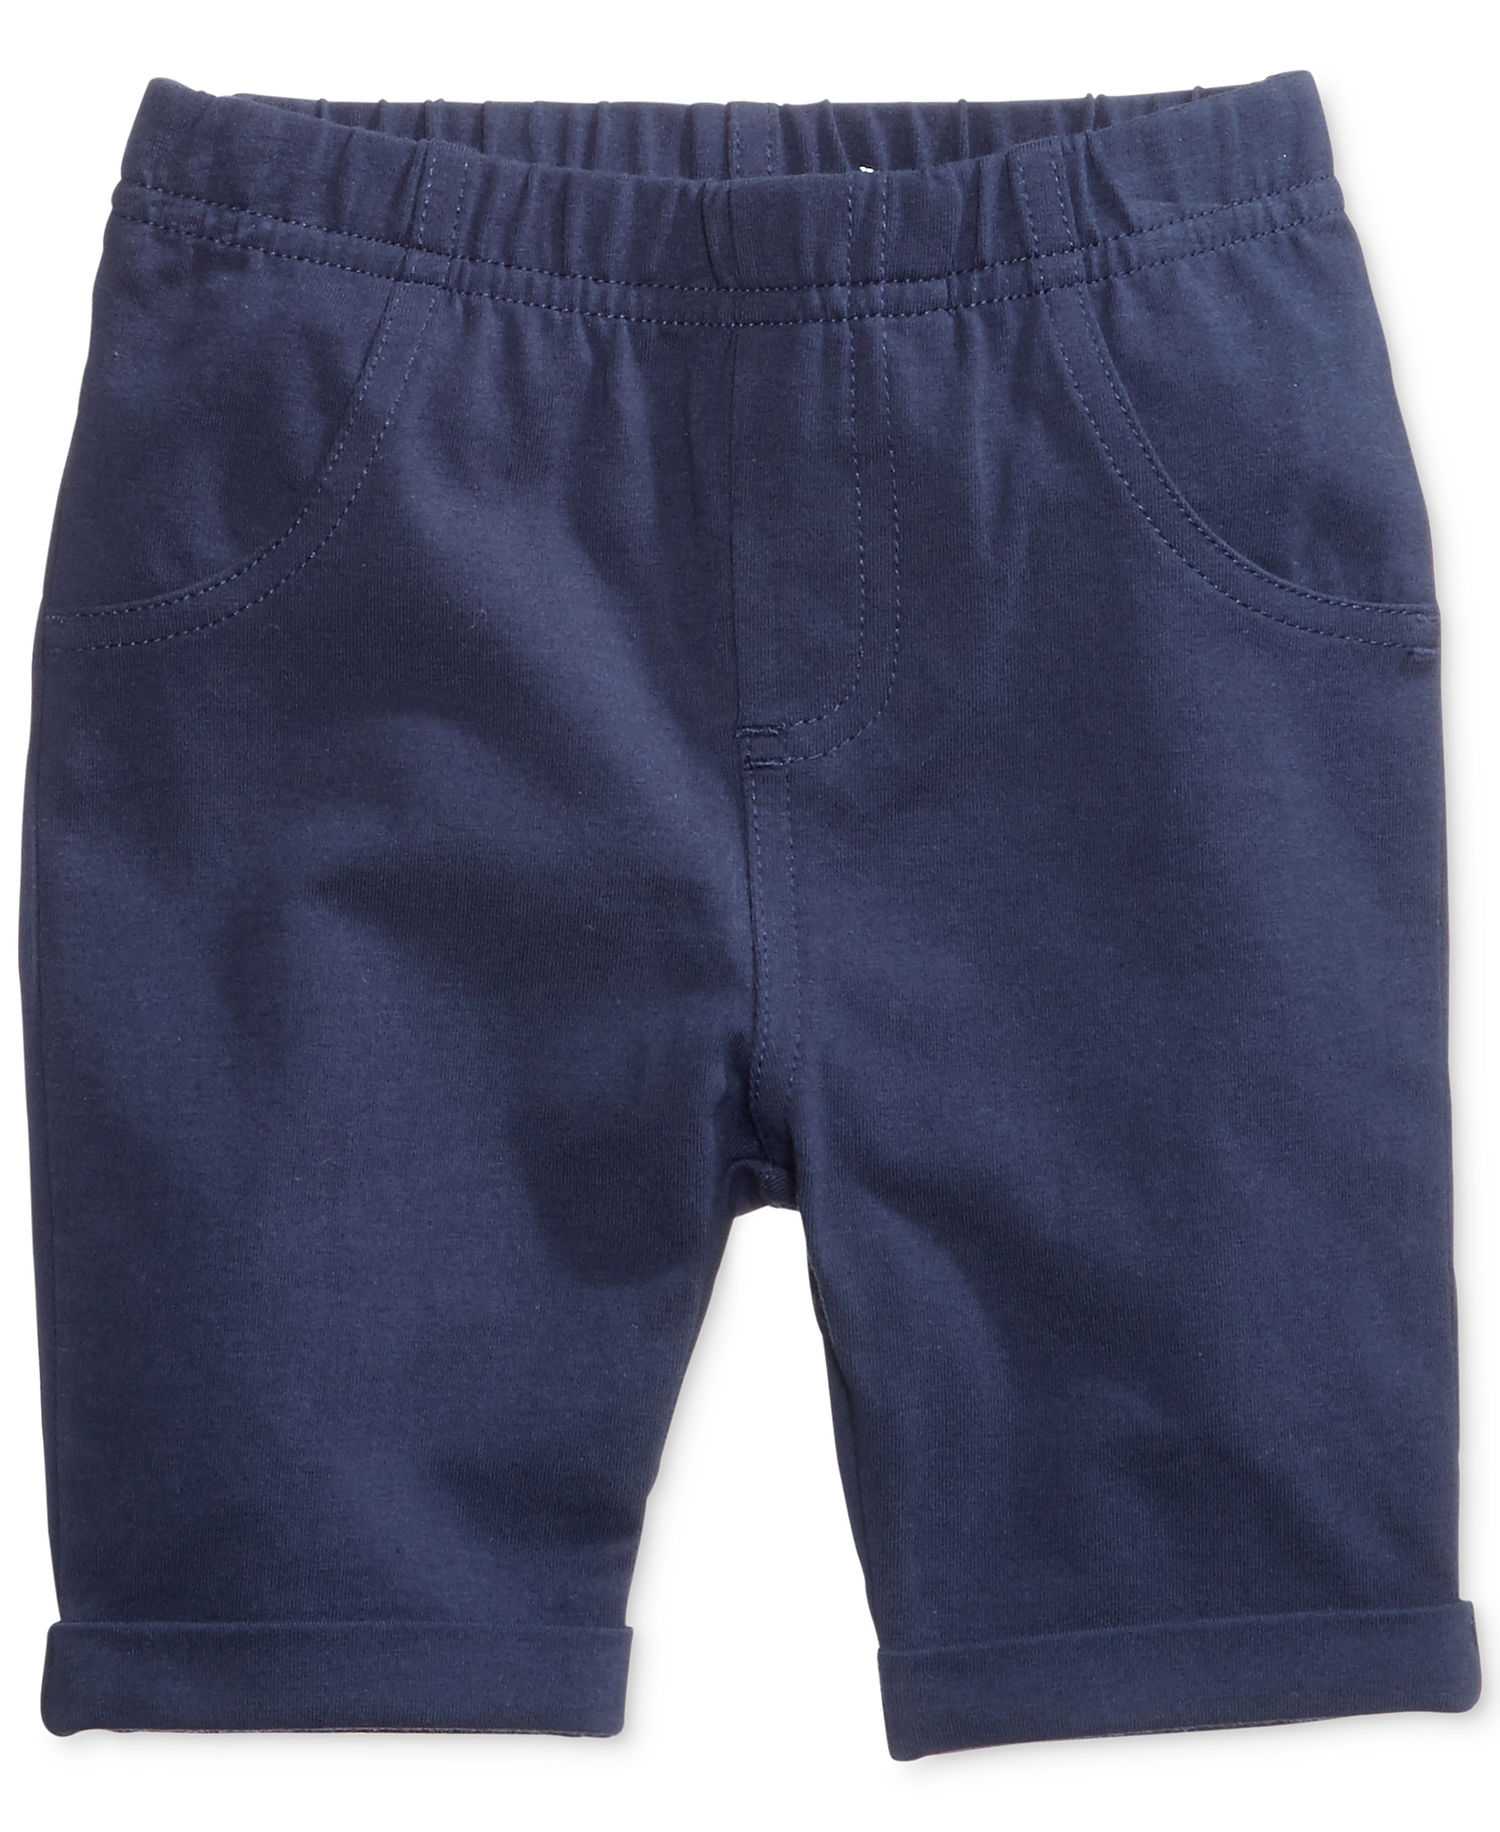 First Impressions Baby Unisex Flat Front Walking Shorts (3-6 Months, Blue)